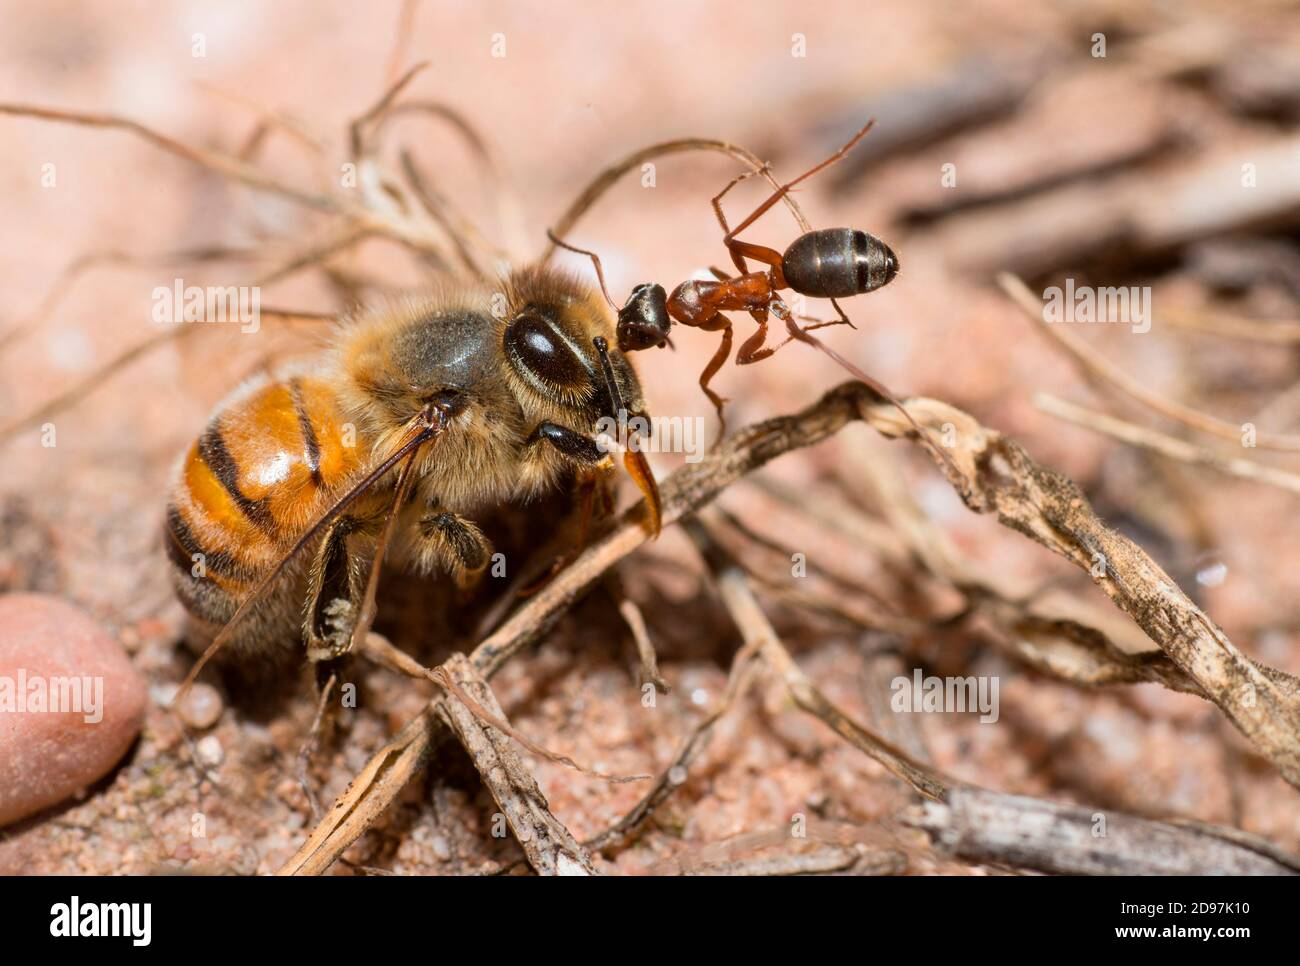 Southern wood ant (Formica rufa) towing a honey bee (Apis mellifera), Vosges du Nord Regional Nature Park, France Stock Photo